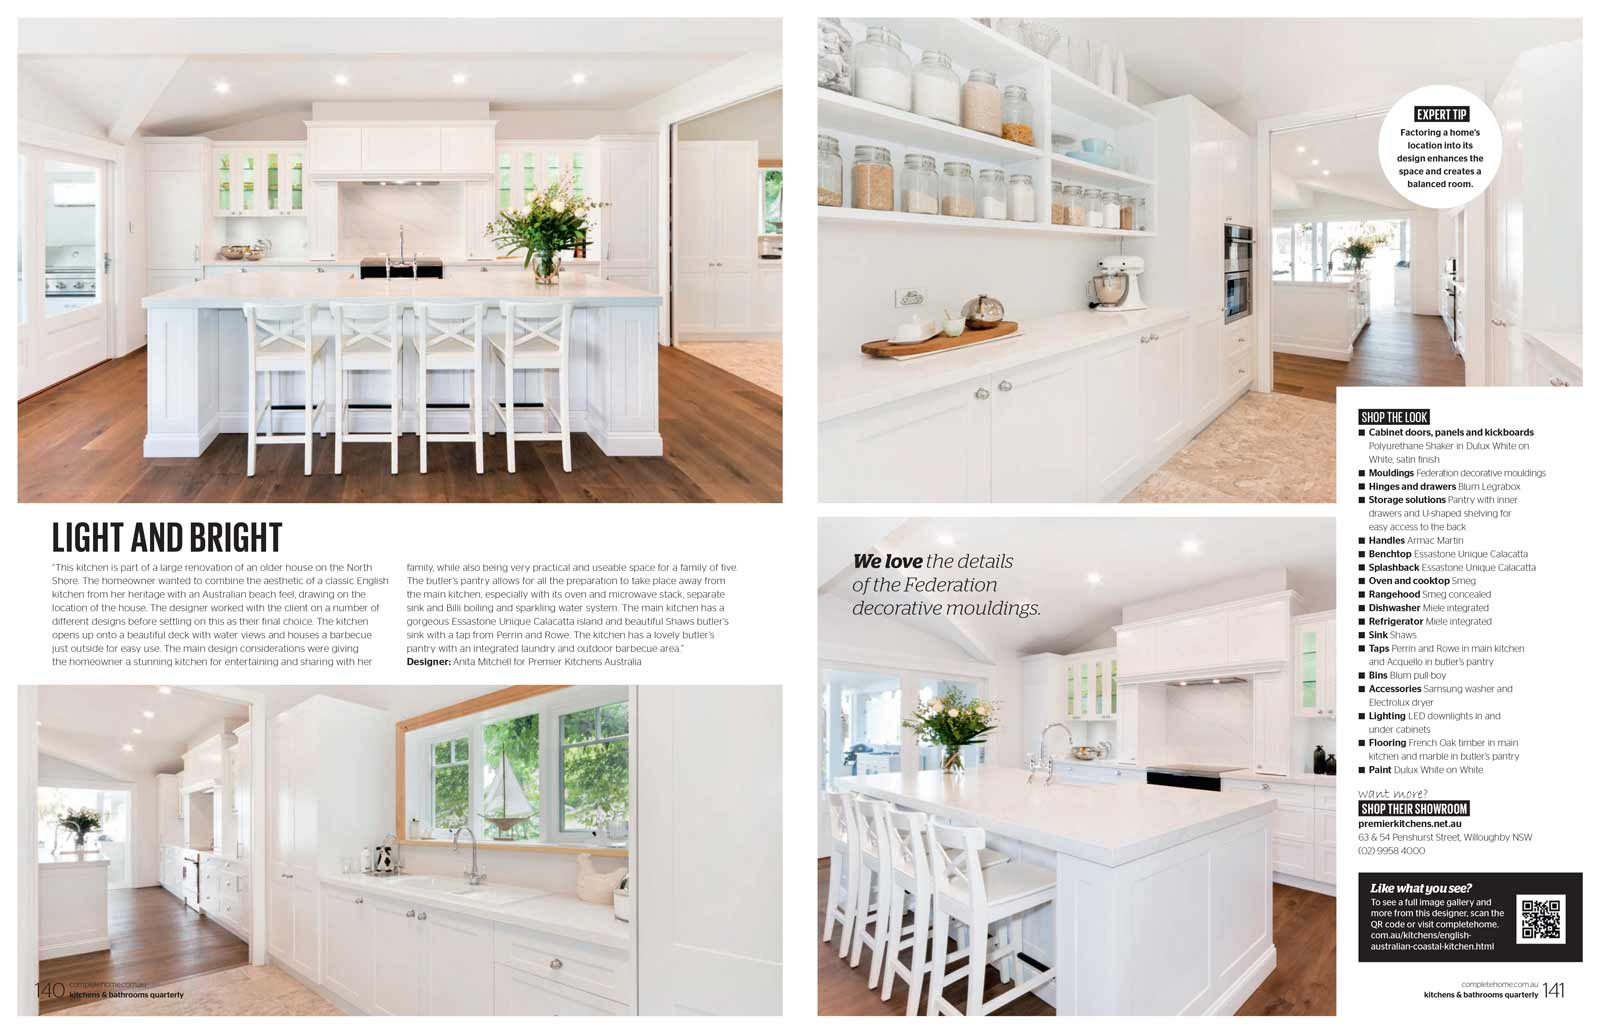 Kitchens and Bathrooms Quarterly magazine article featuring Premier Kitchens Australia Clontarf kitchen design